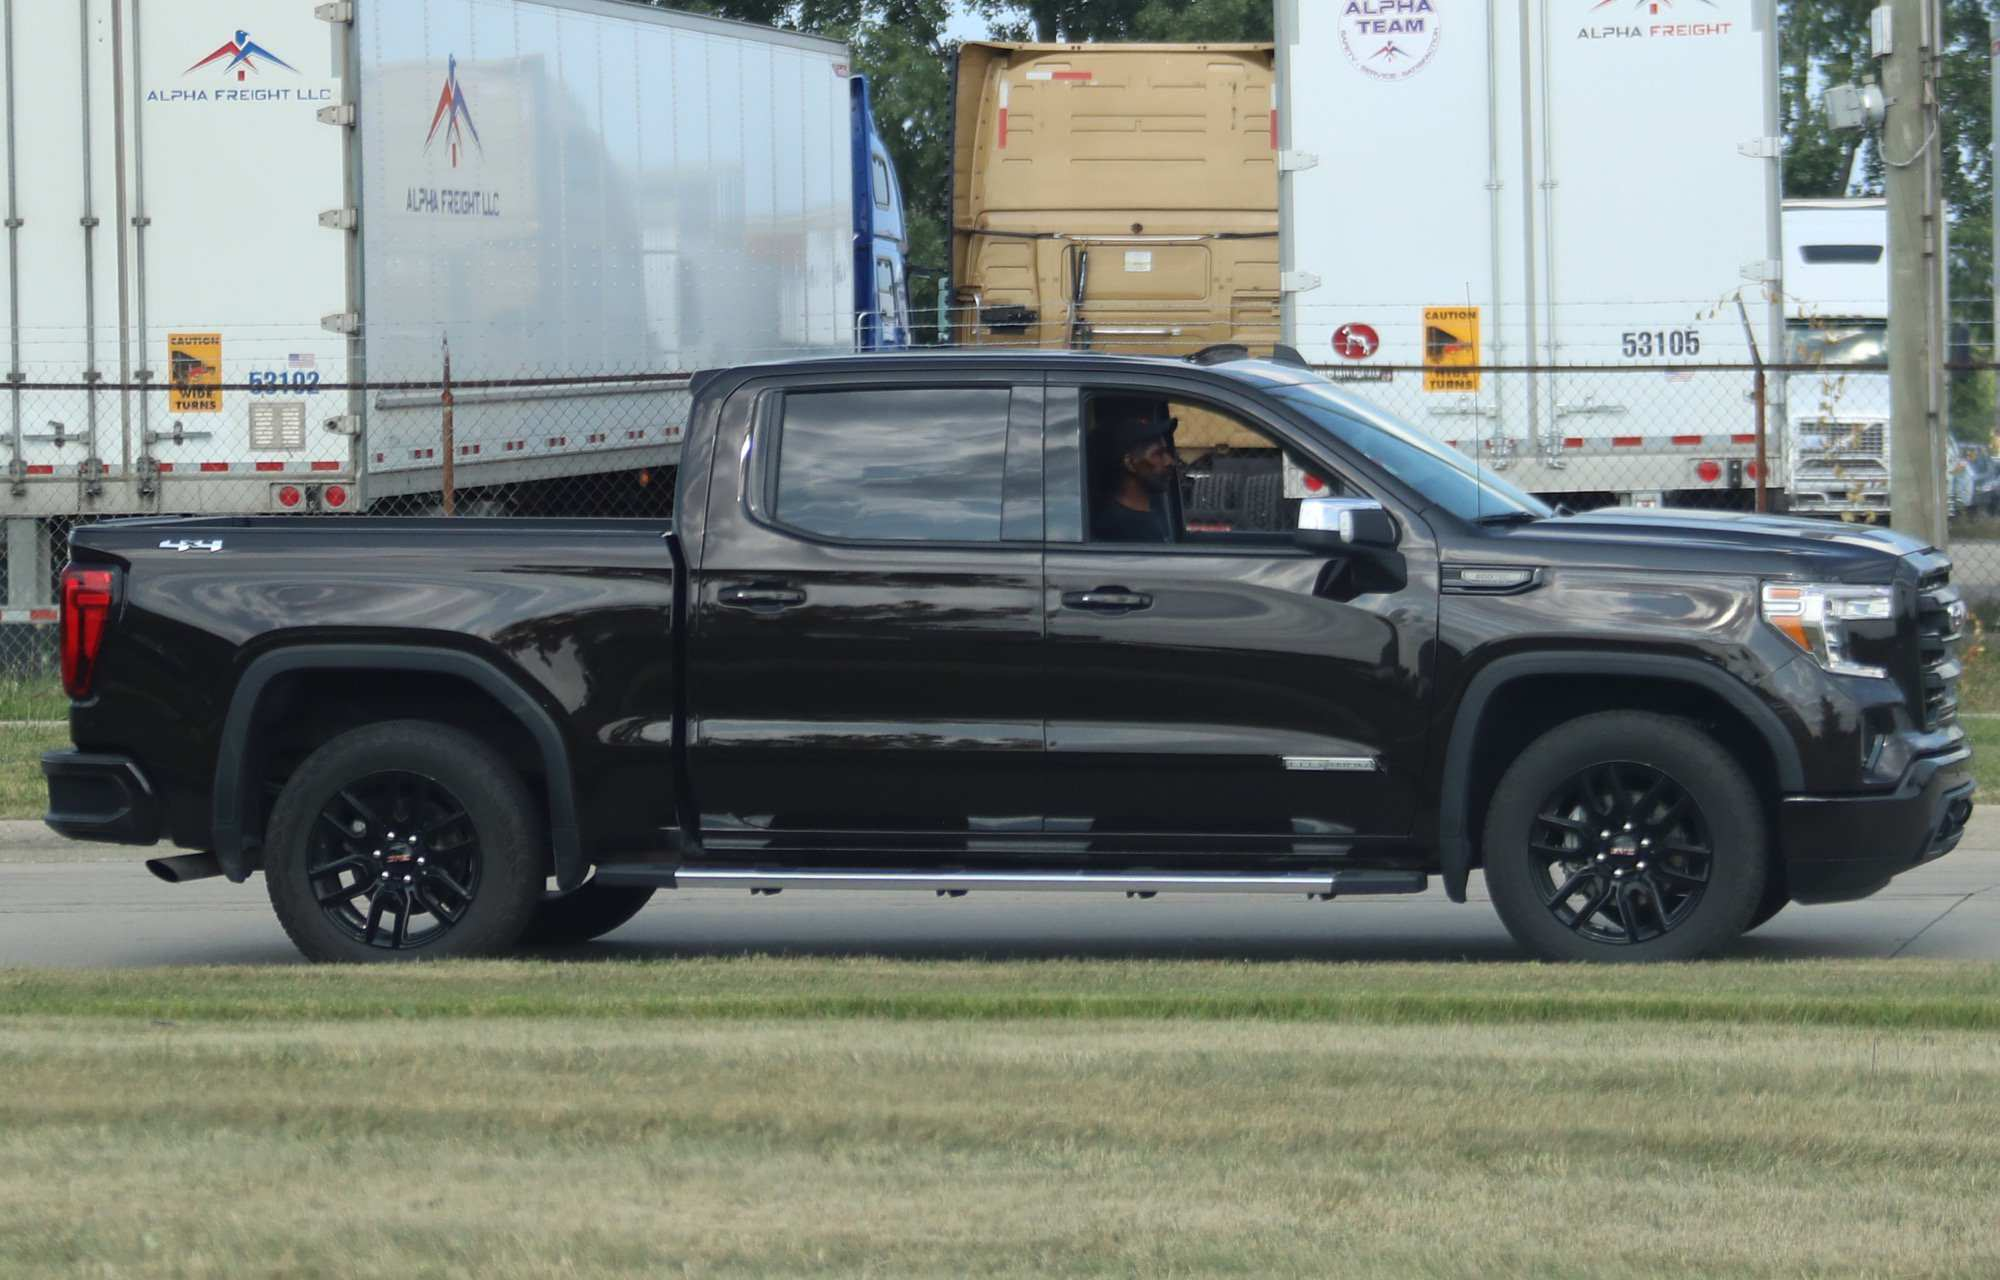 79 New 2019 Gmc Elevation Edition Price and Review for 2019 Gmc Elevation Edition